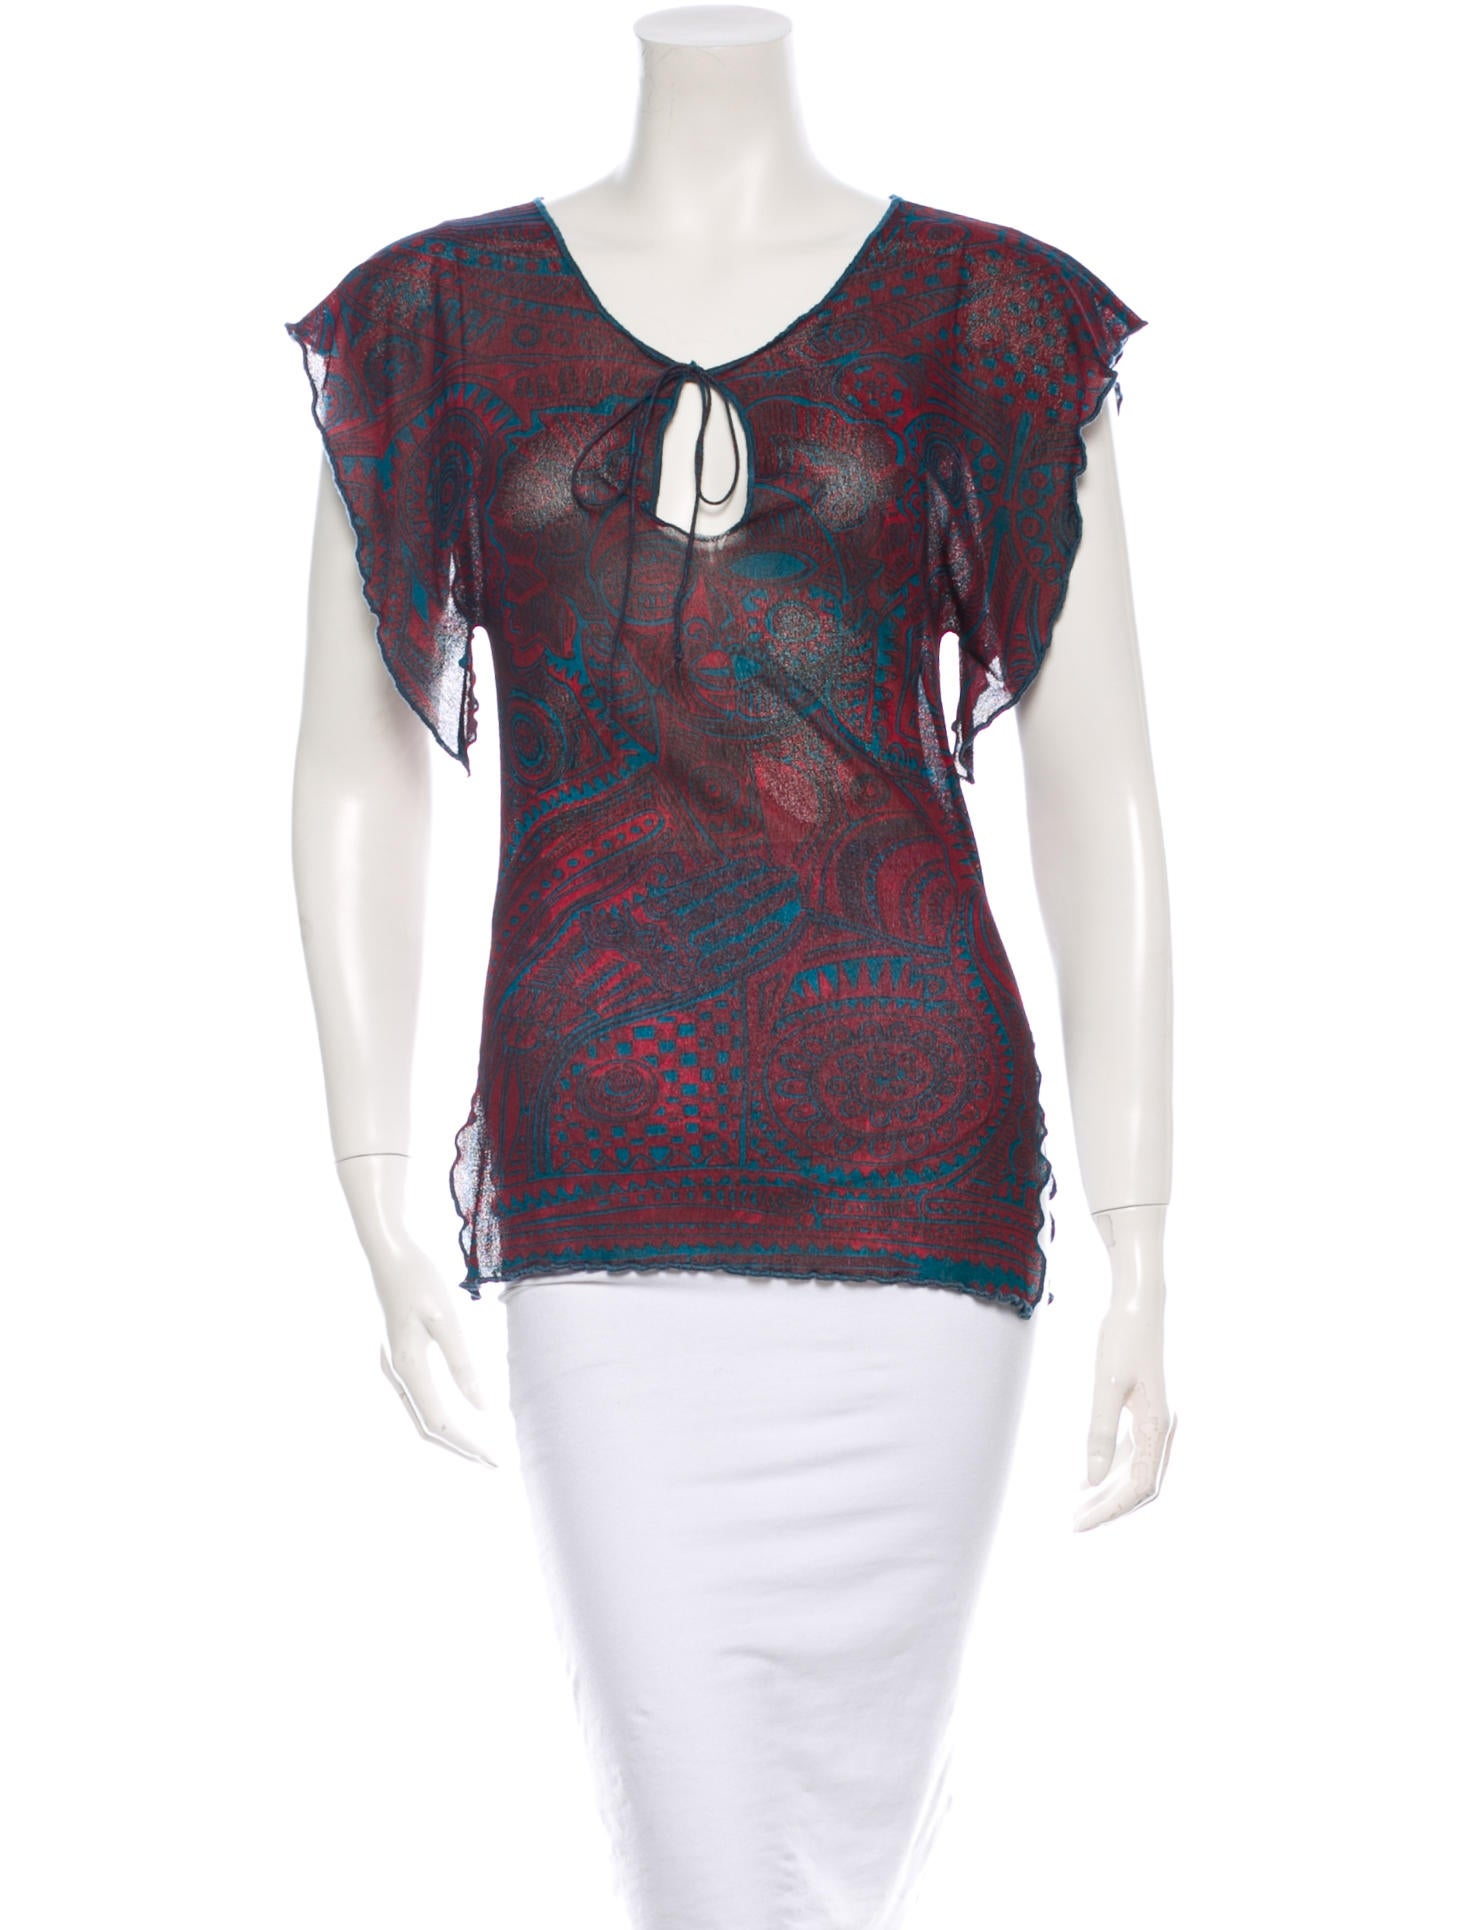 Jean paul gaultier soleil printed top clothing for Jean paul gaultier clothing